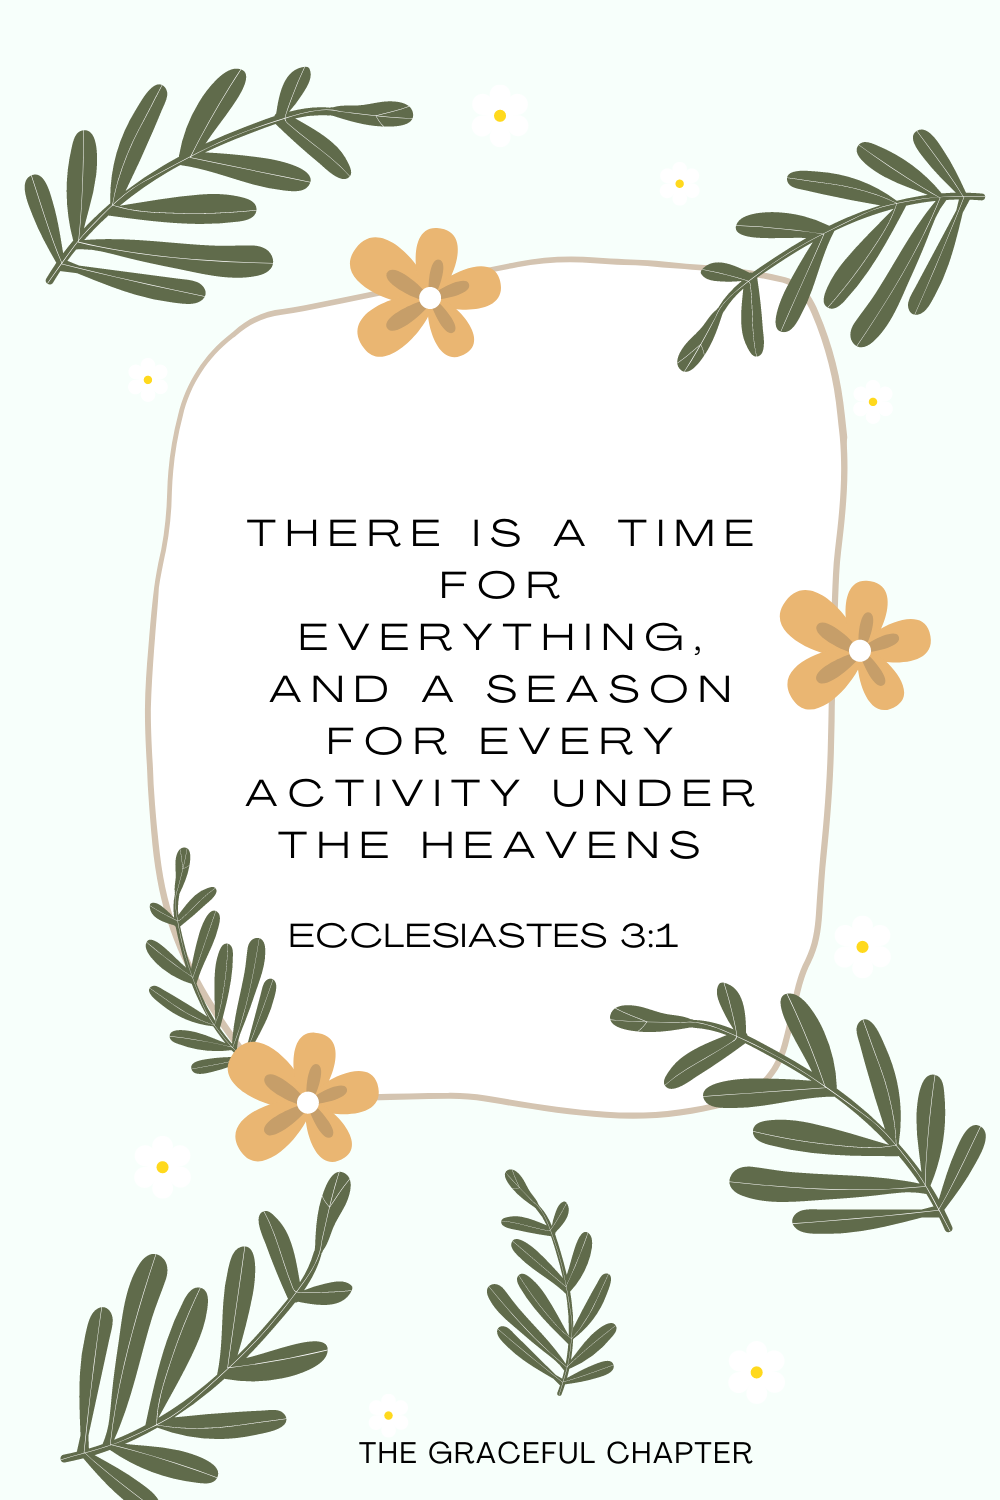 There is a time for everything, and a season for every activity under the heavens Ecclesiastes 3:1